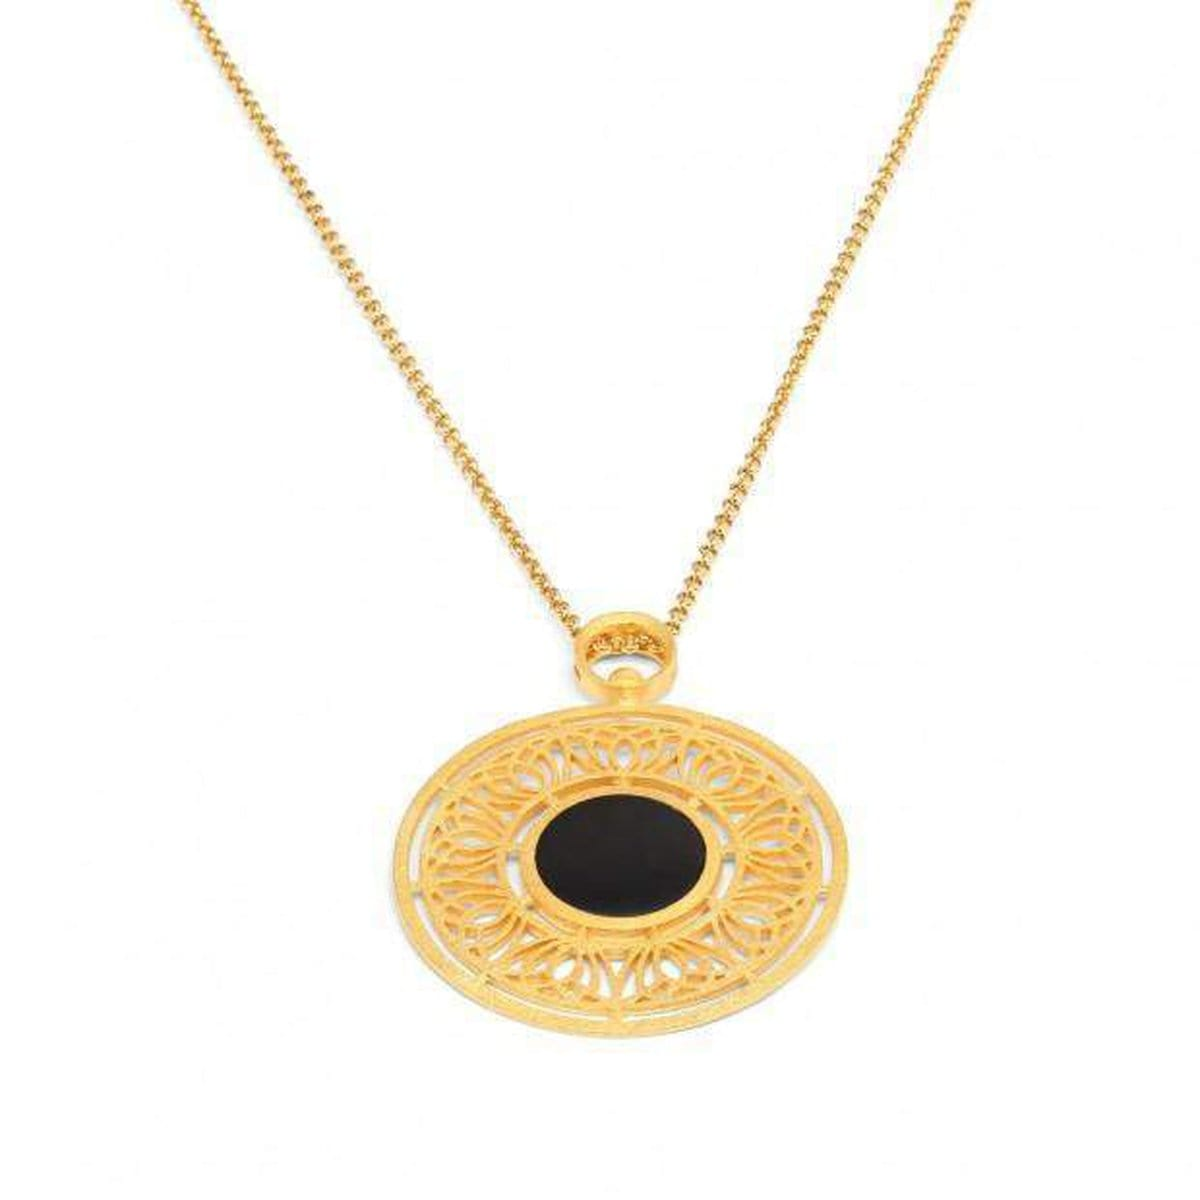 Mandalo Onyx Necklace - 85389896-Bernd Wolf-Renee Taylor Gallery